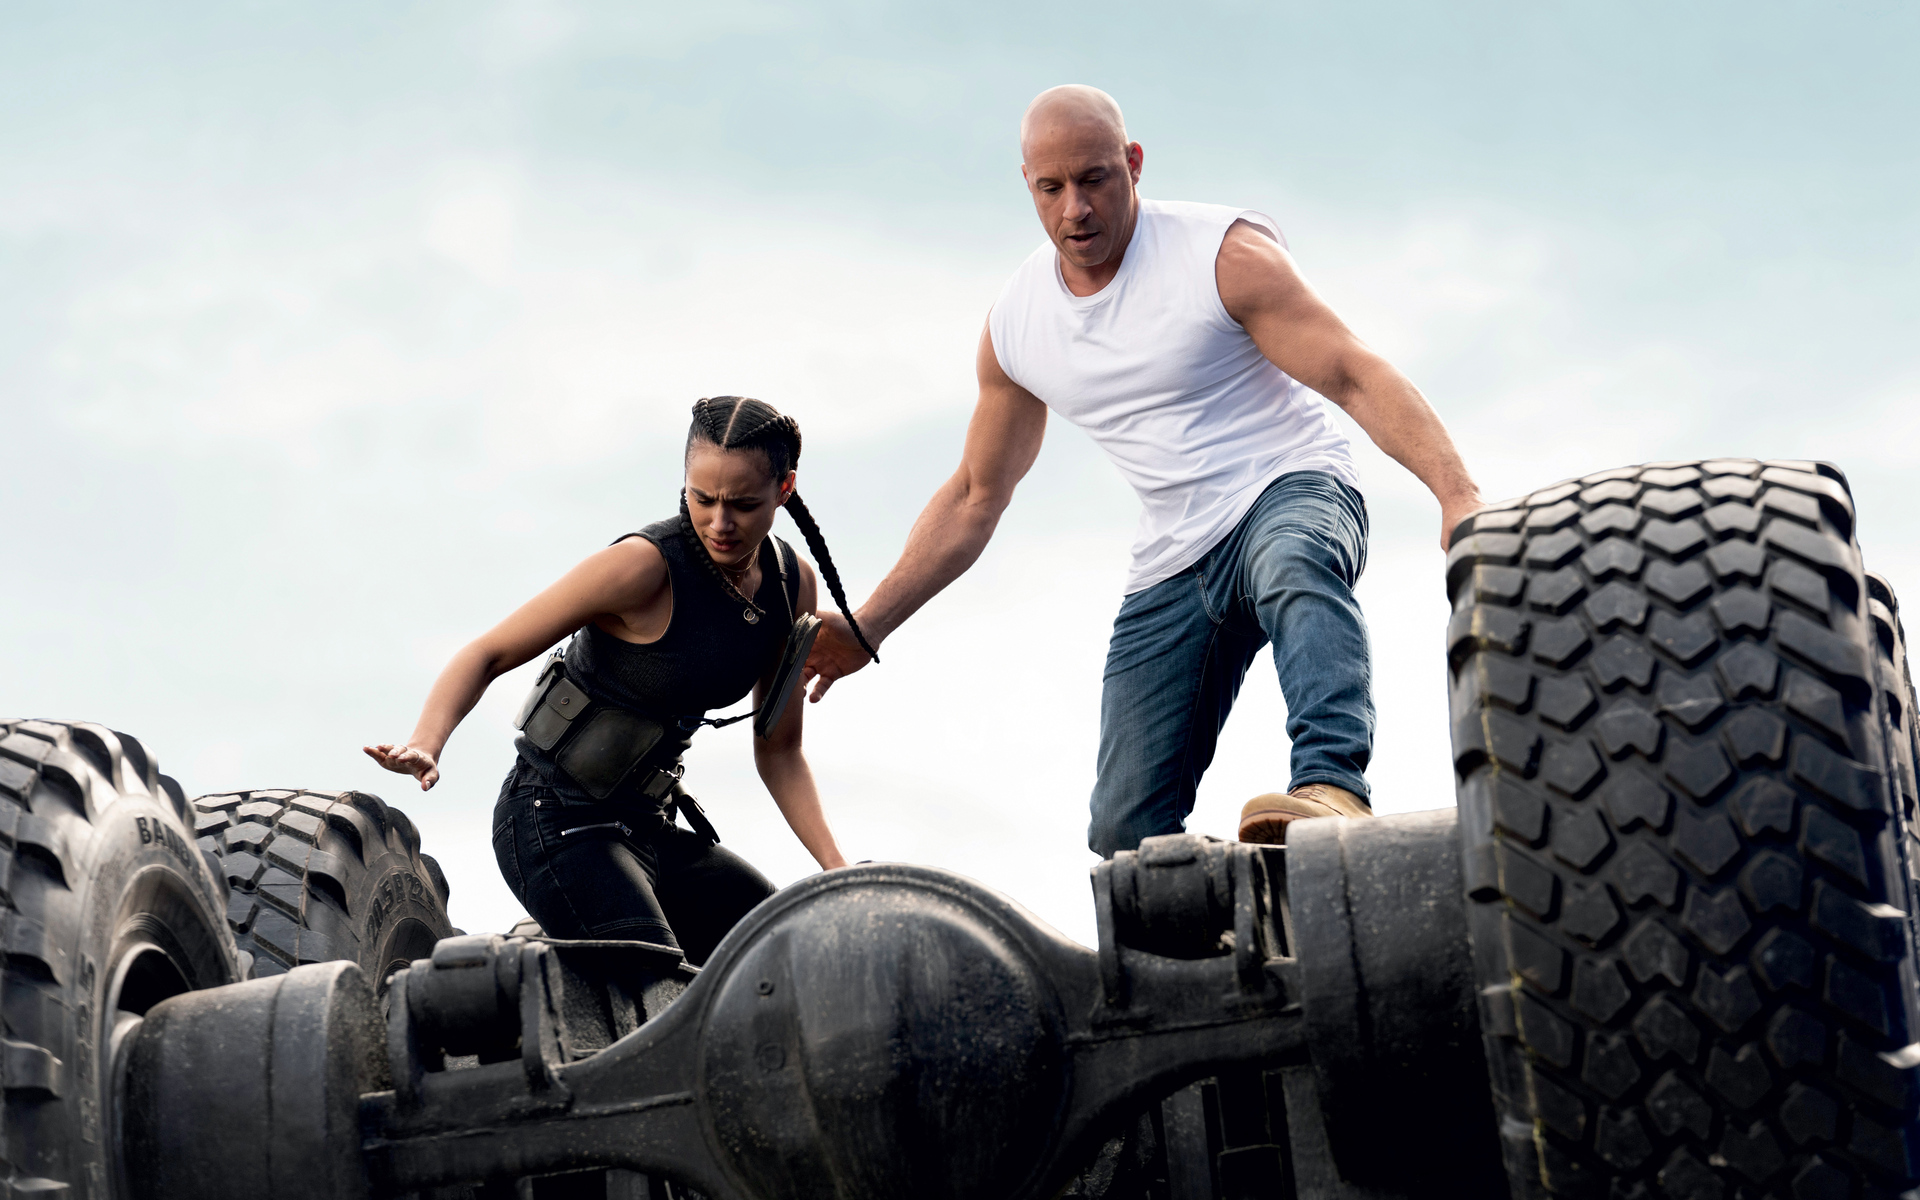 fast-and-furious-9-2020-movie-5k-le.jpg